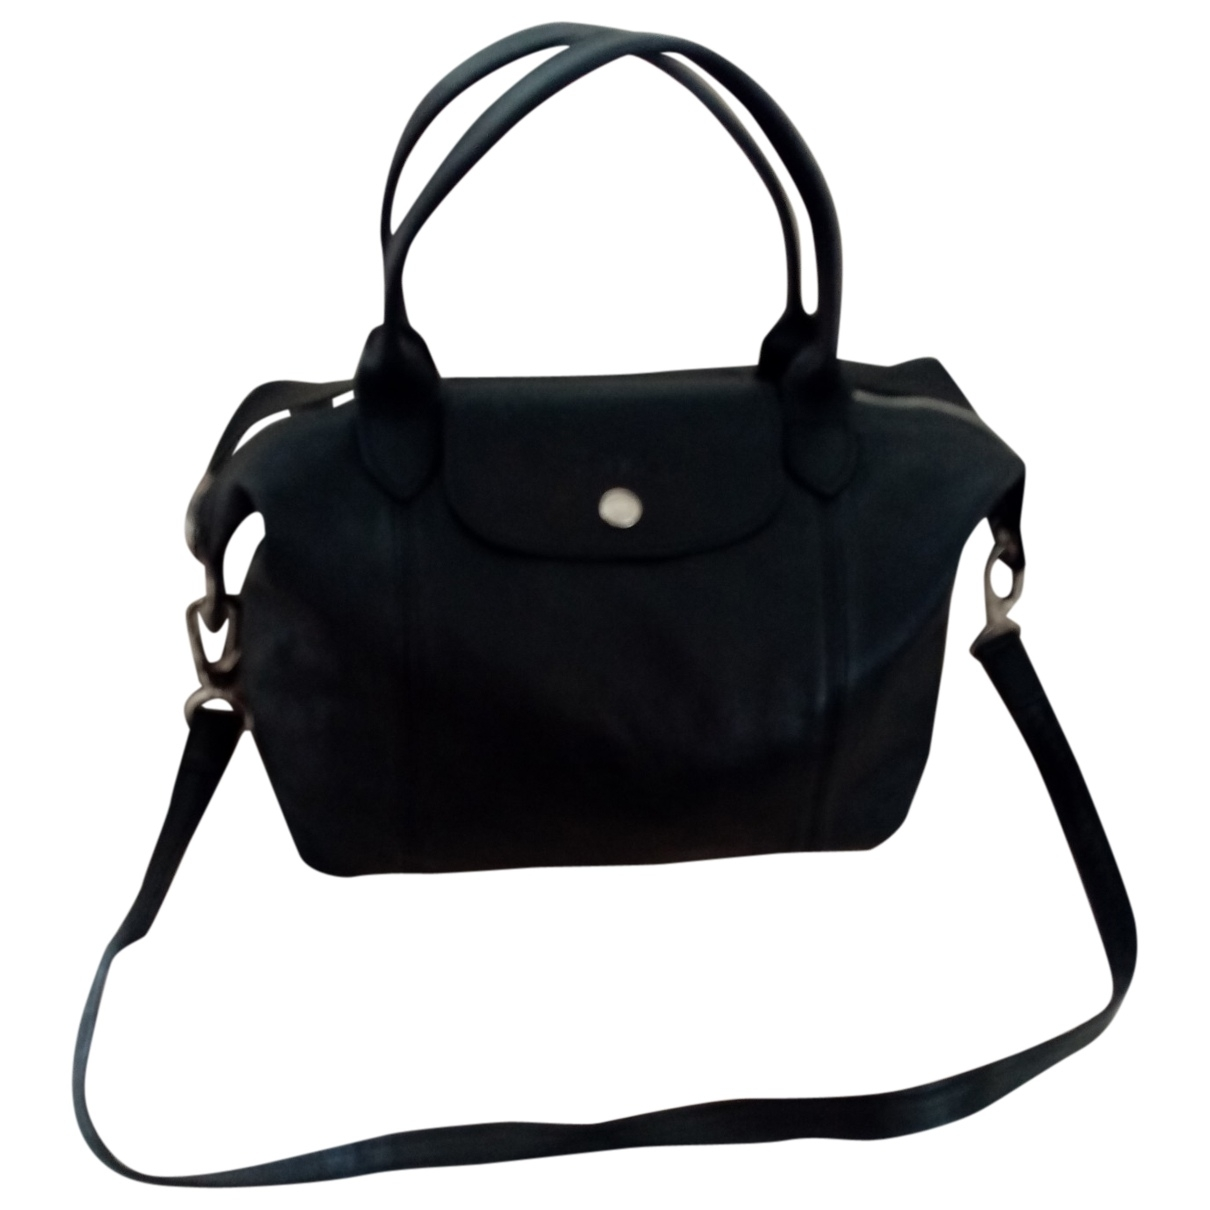 Longchamp \N Black Leather handbag for Women \N